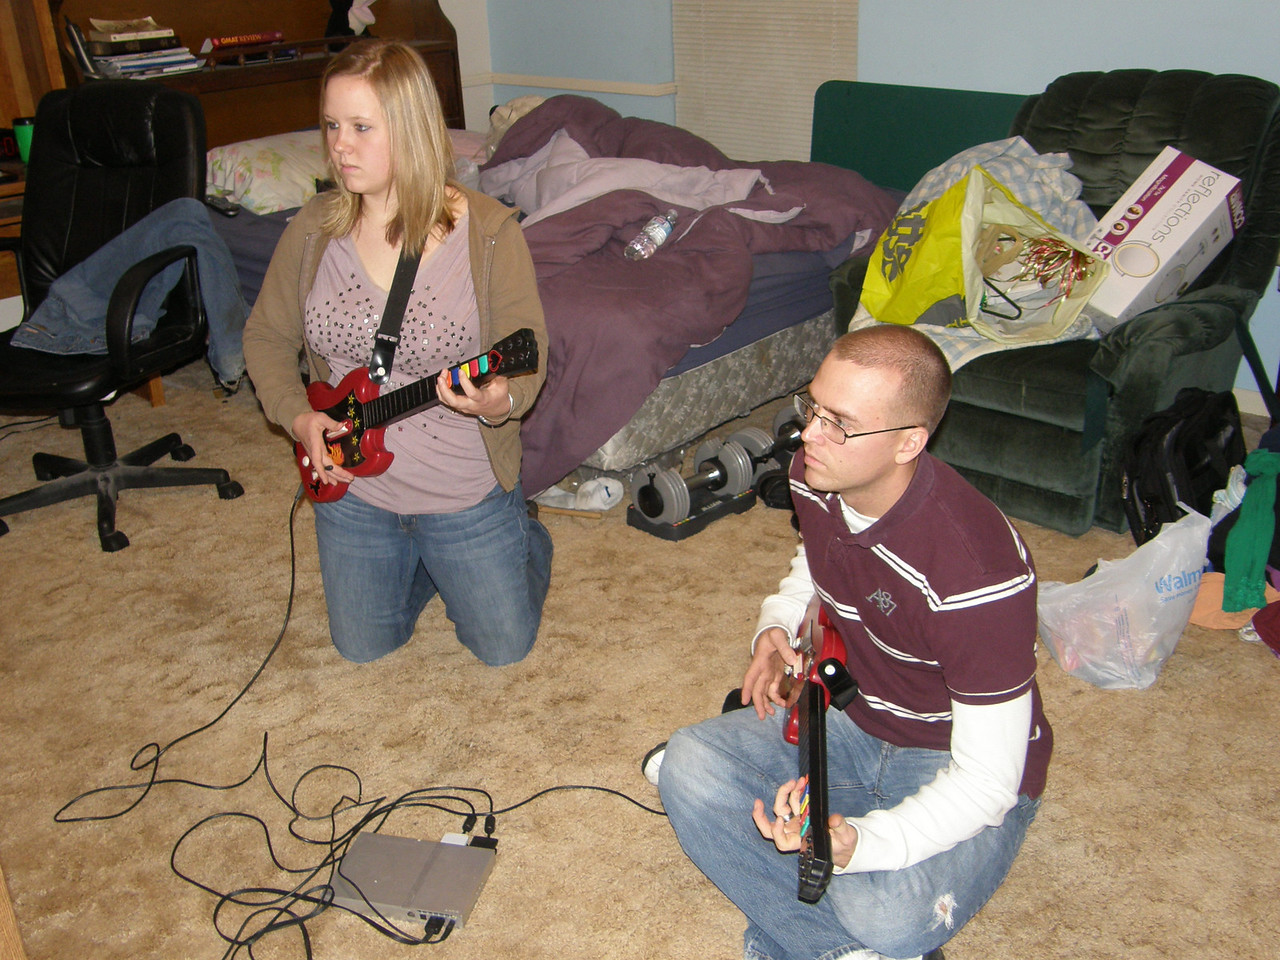 Katie and Luke intensely following the music on Guitar Hero.